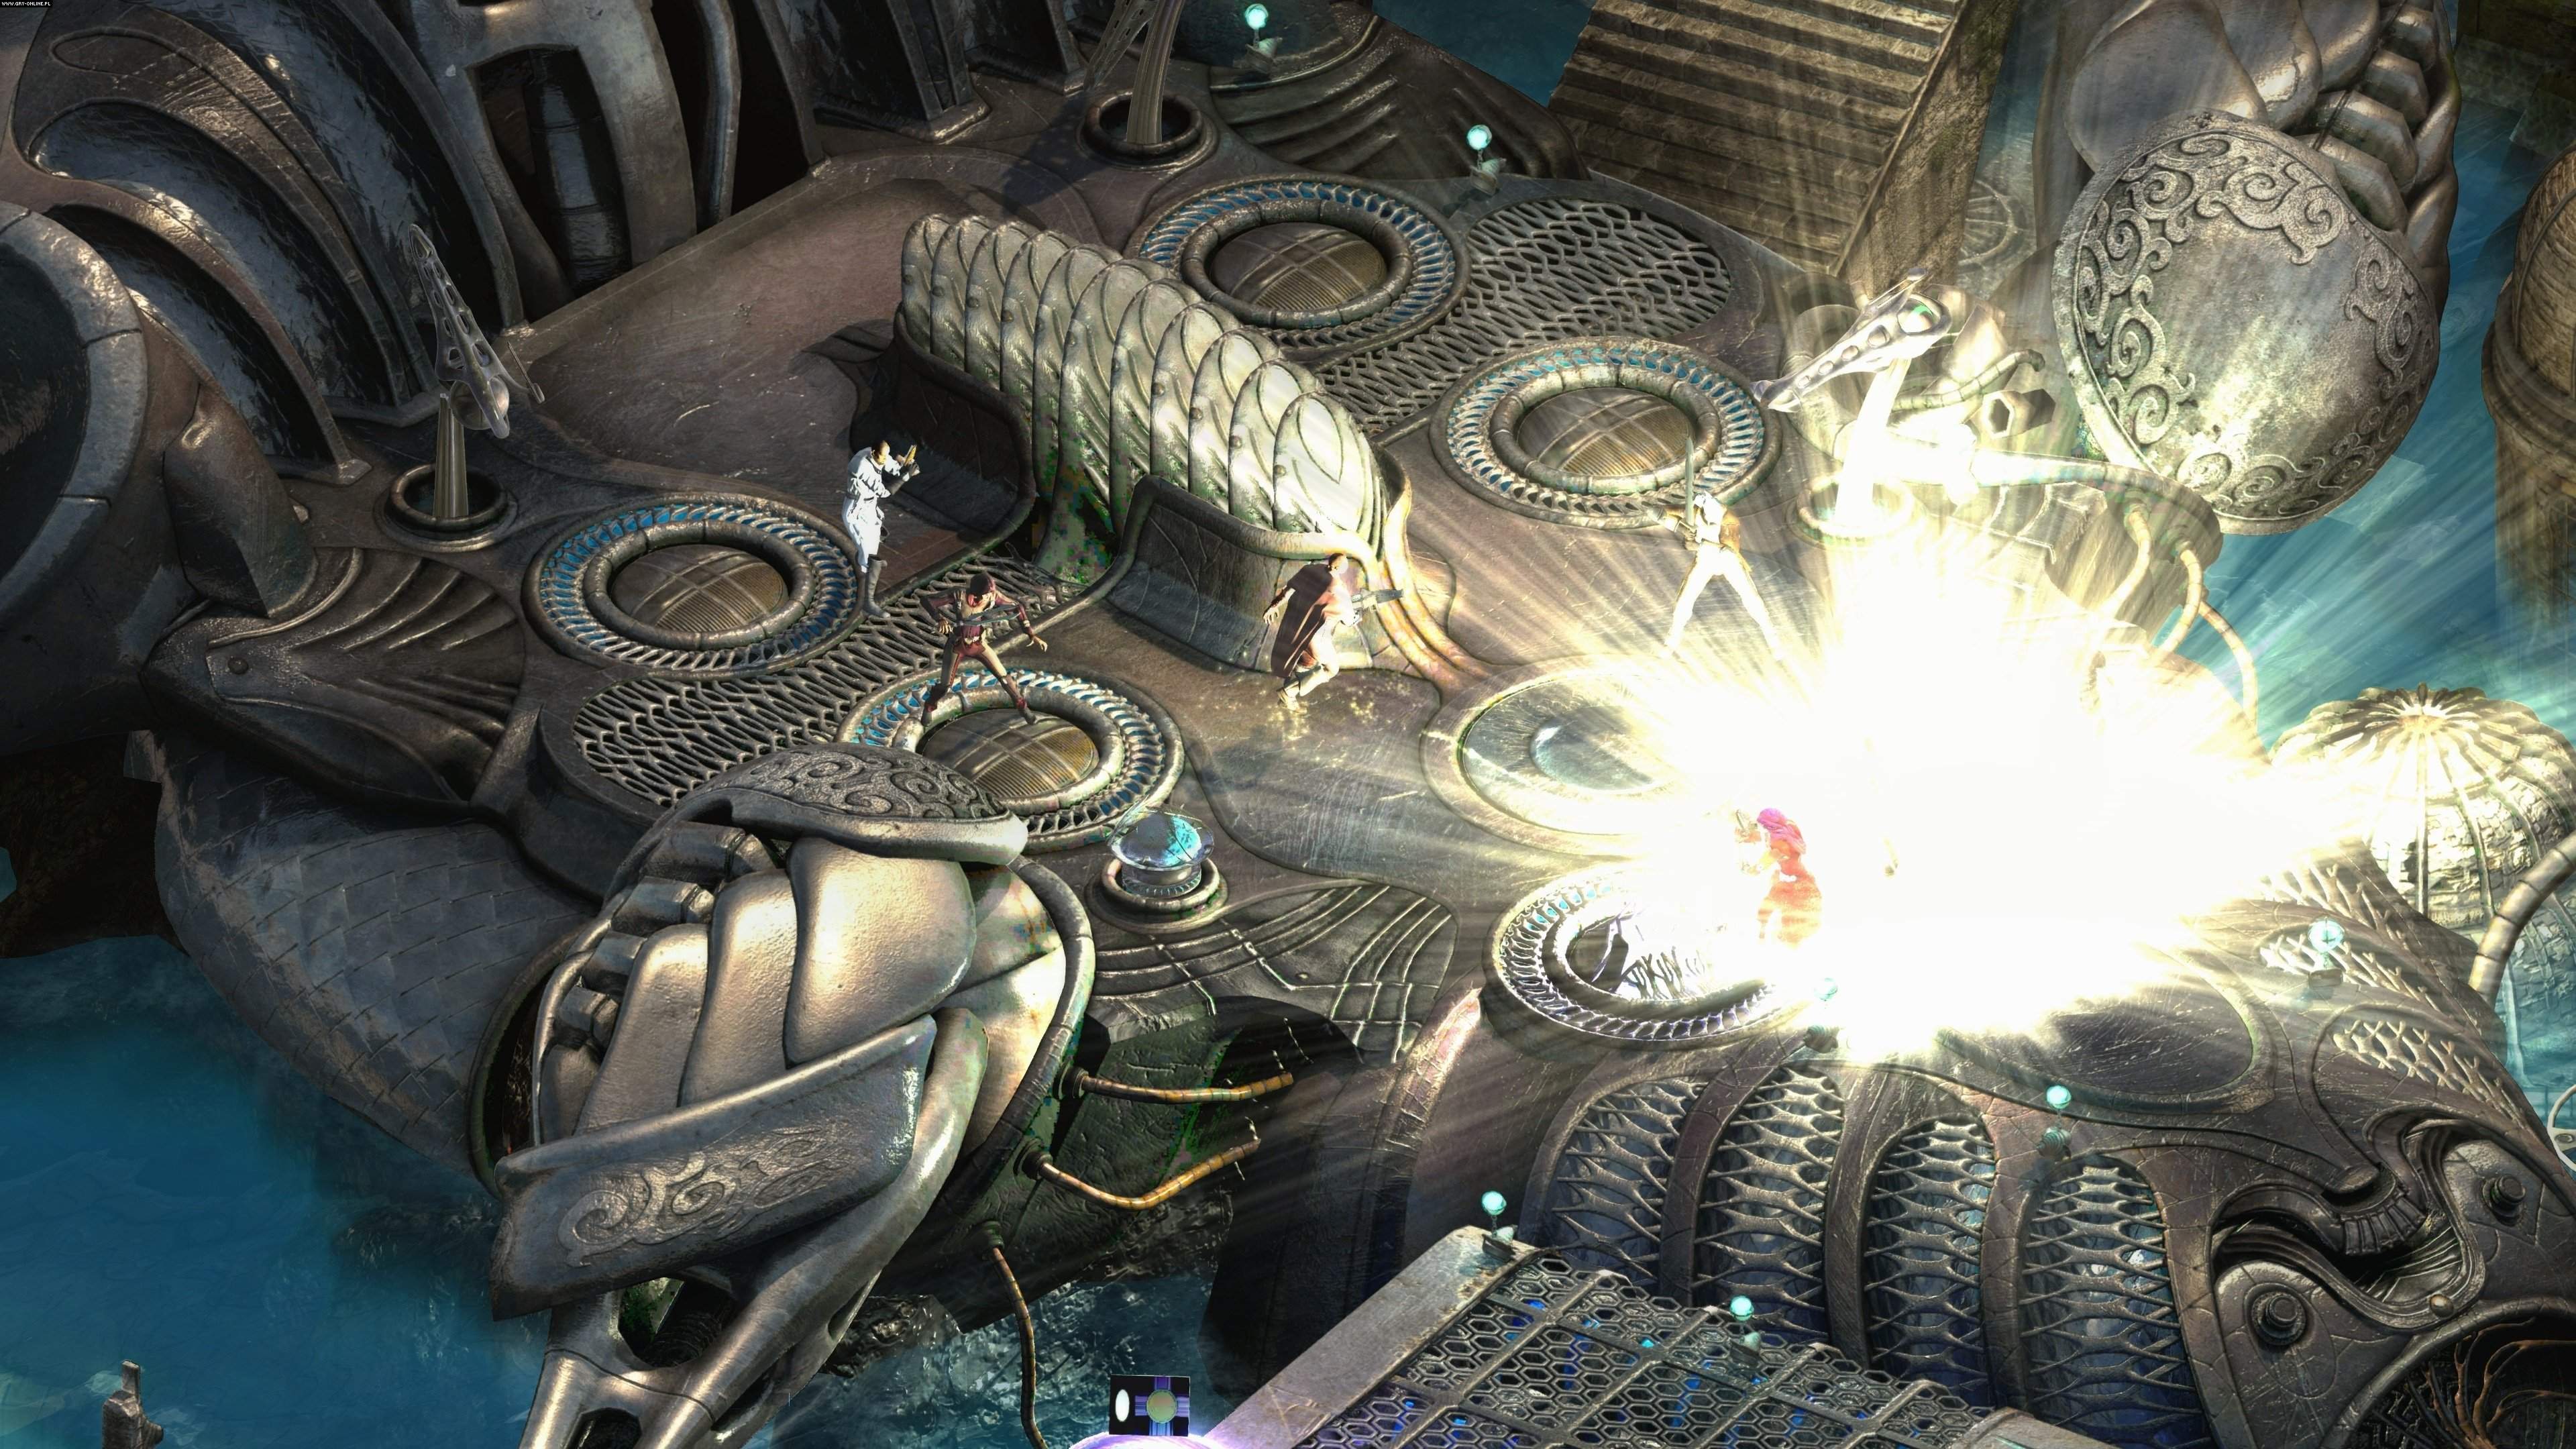 Torment: Tides of Numenera PC Games Image 3/28, inXile entertainment, Techland